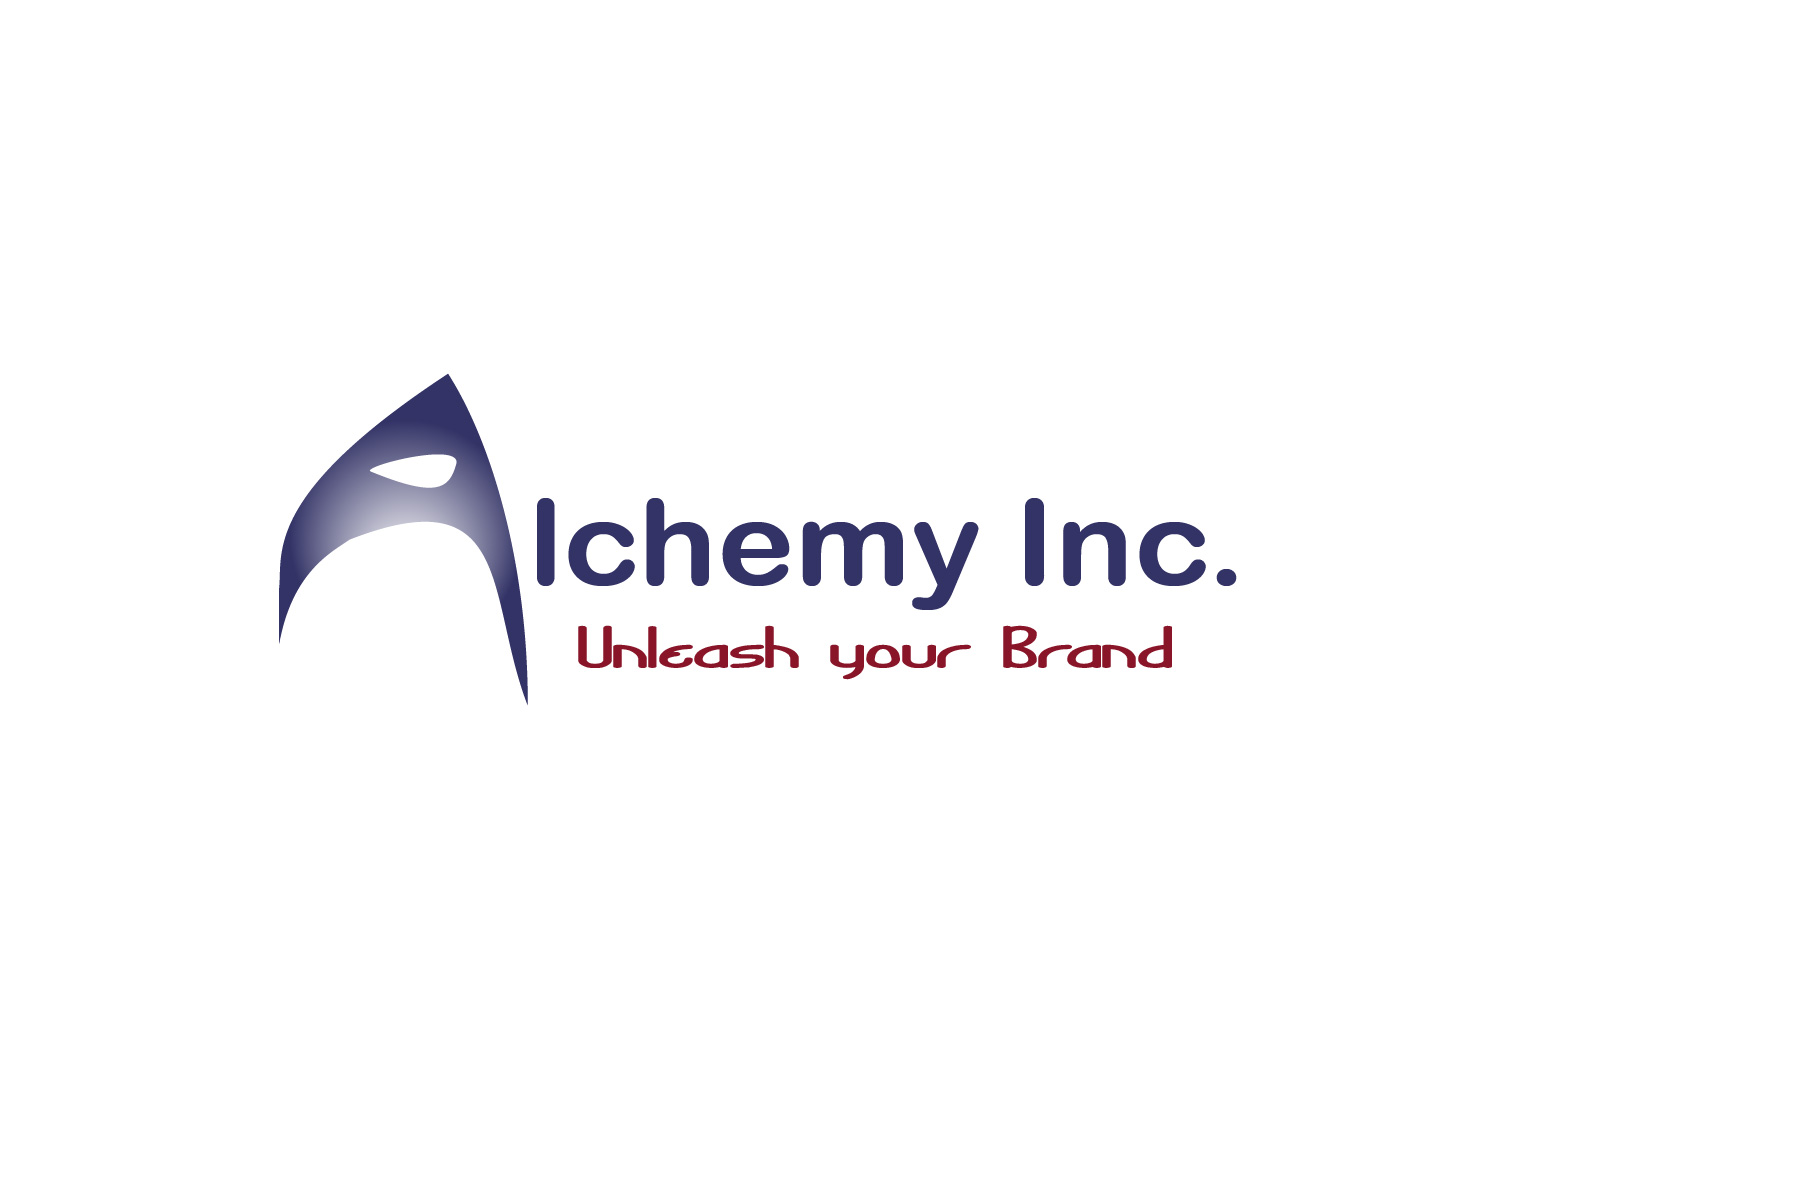 Logo Design by Nancy Grant - Entry No. 98 in the Logo Design Contest Logo Design for Alchemy Inc (Creative/Edgy/Sophisticated).